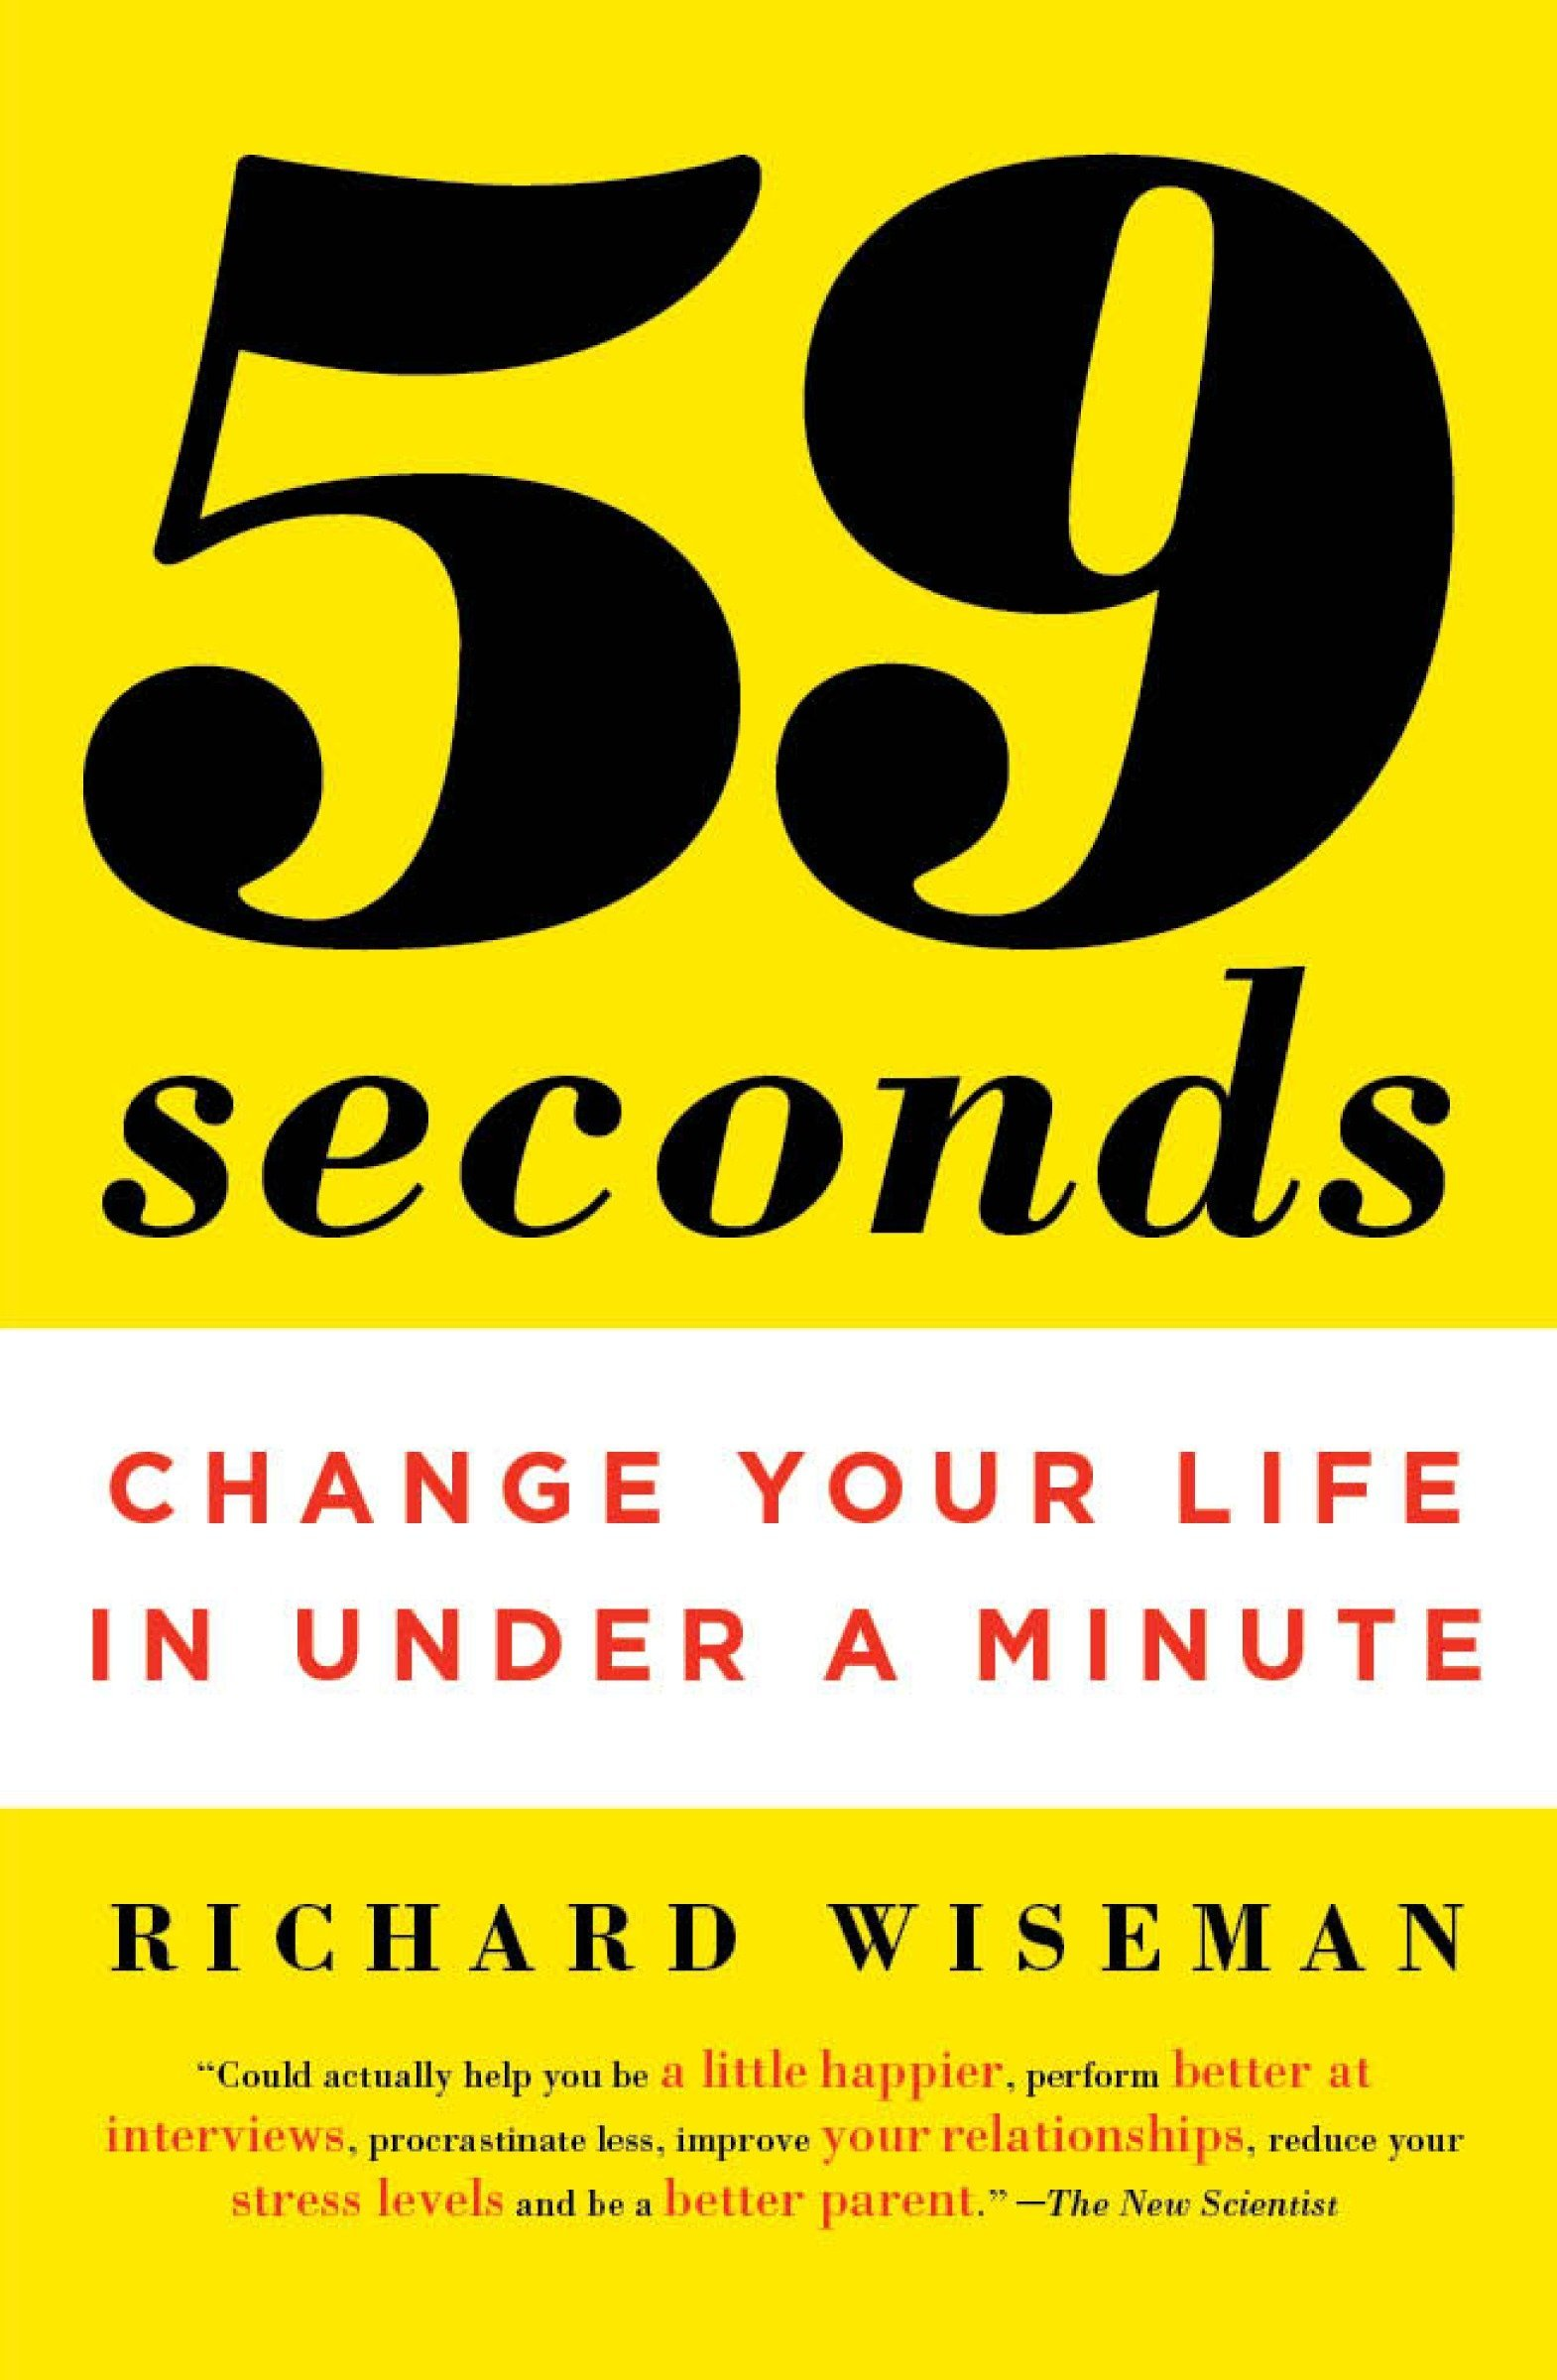 59 Seconds Richard Wiseman Ebook